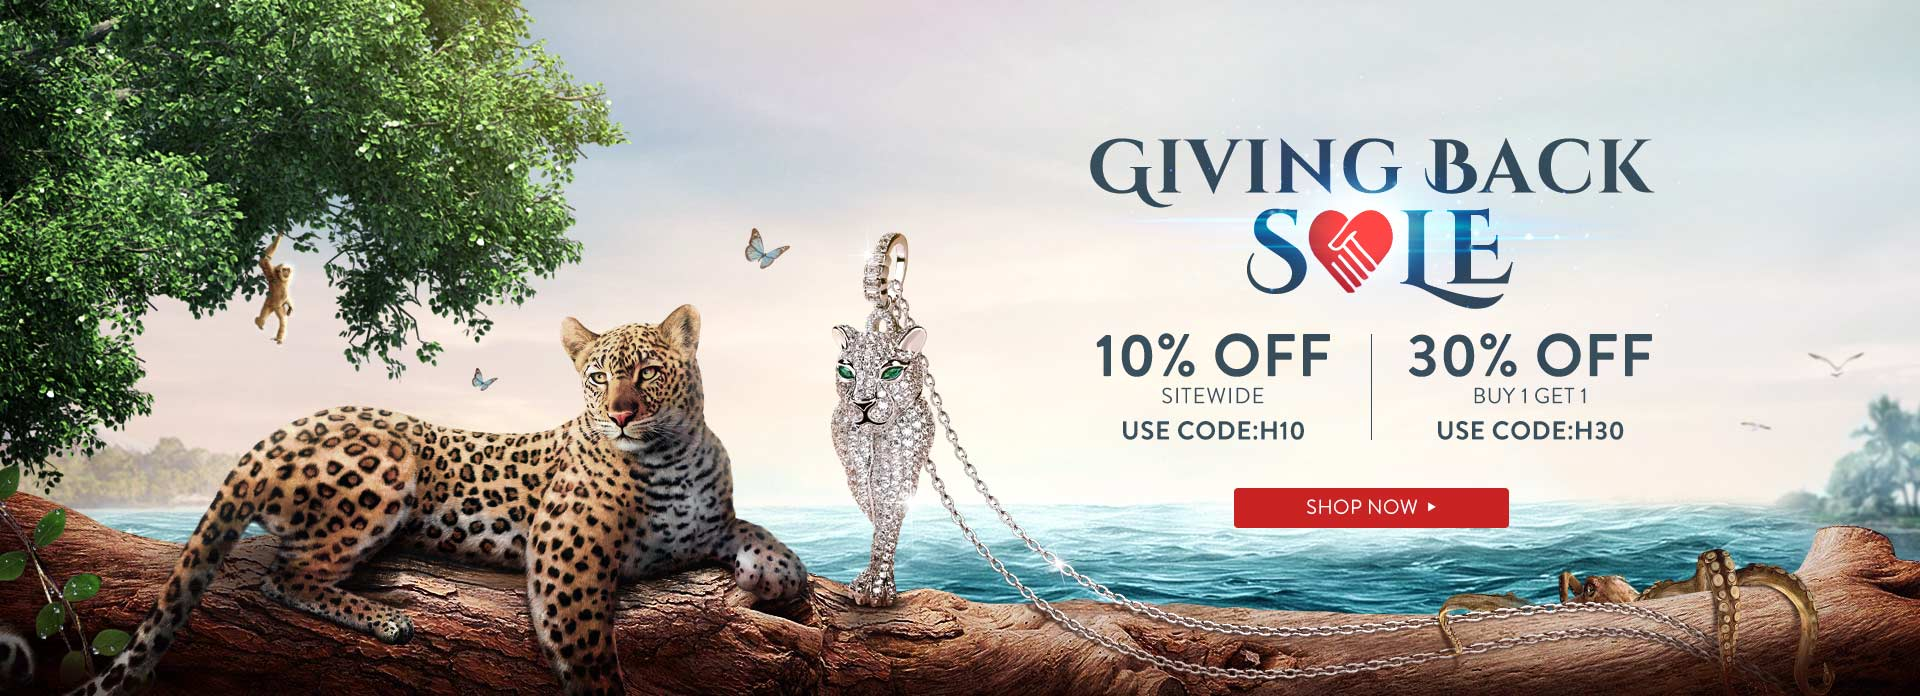 jeulia giving back sale